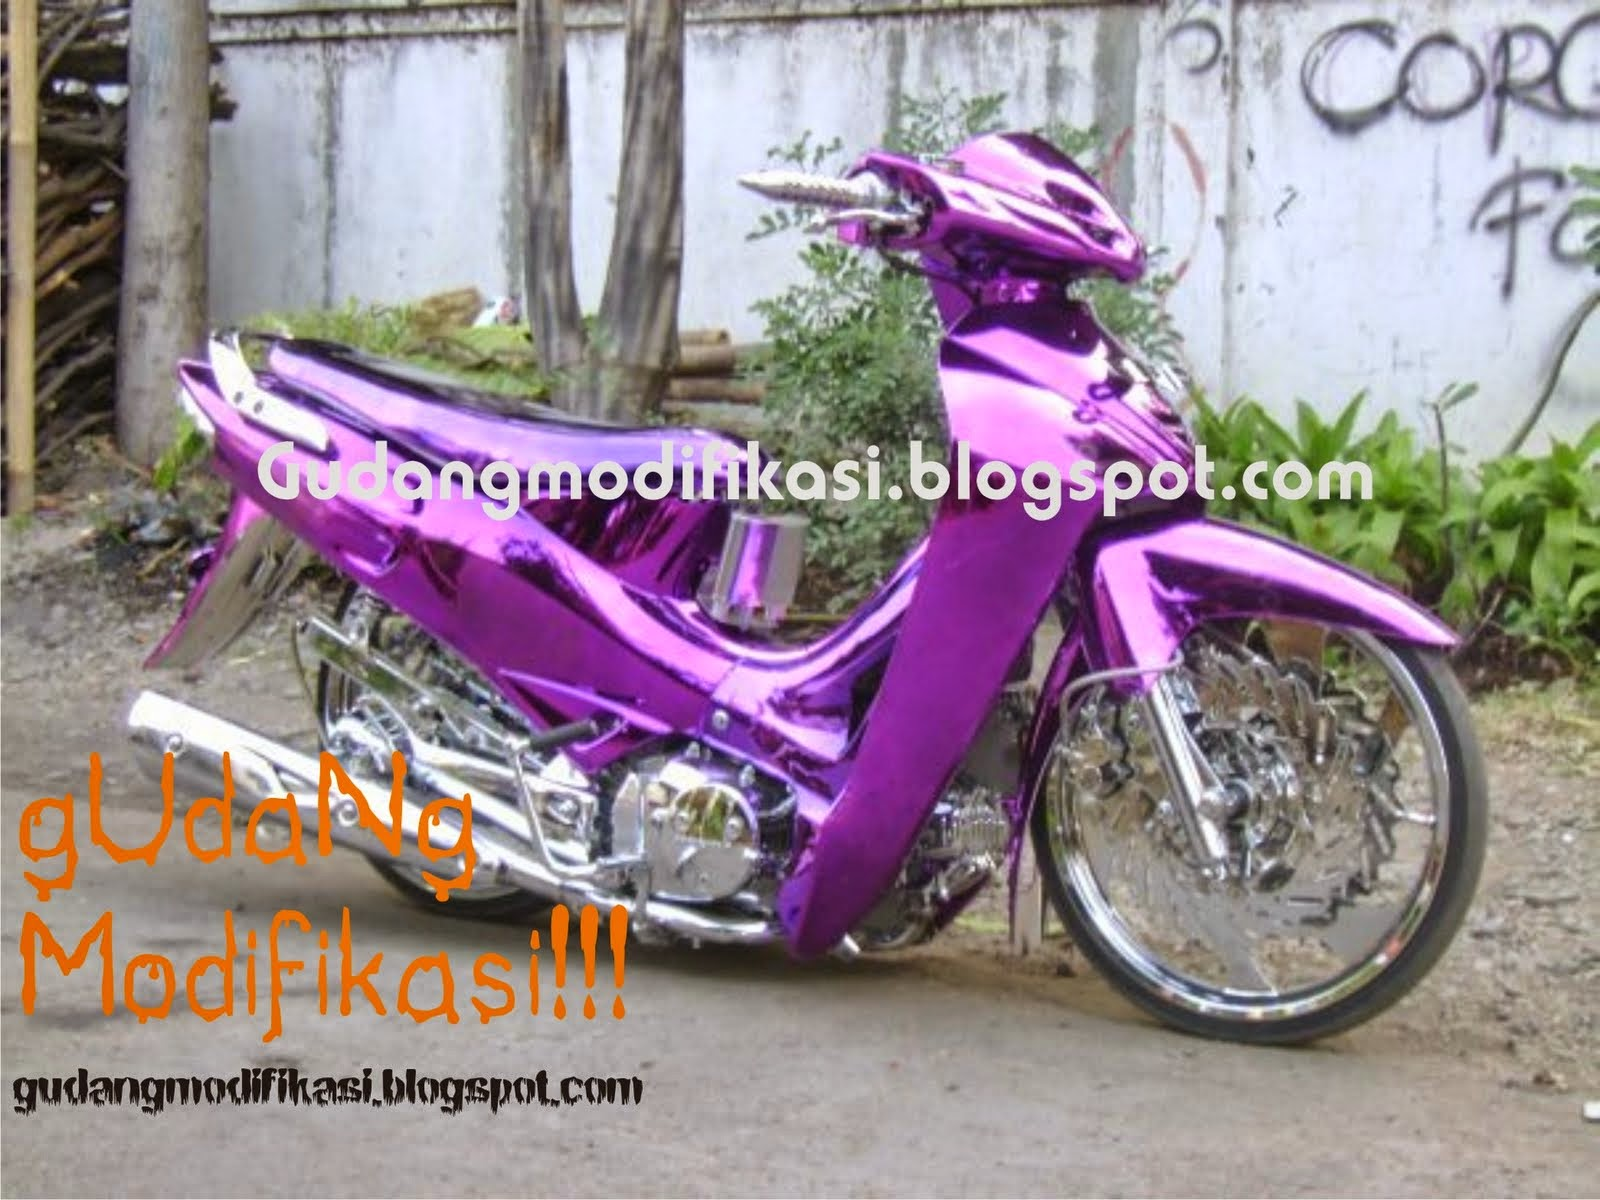 Honda Karisma Modifikasi Road Race